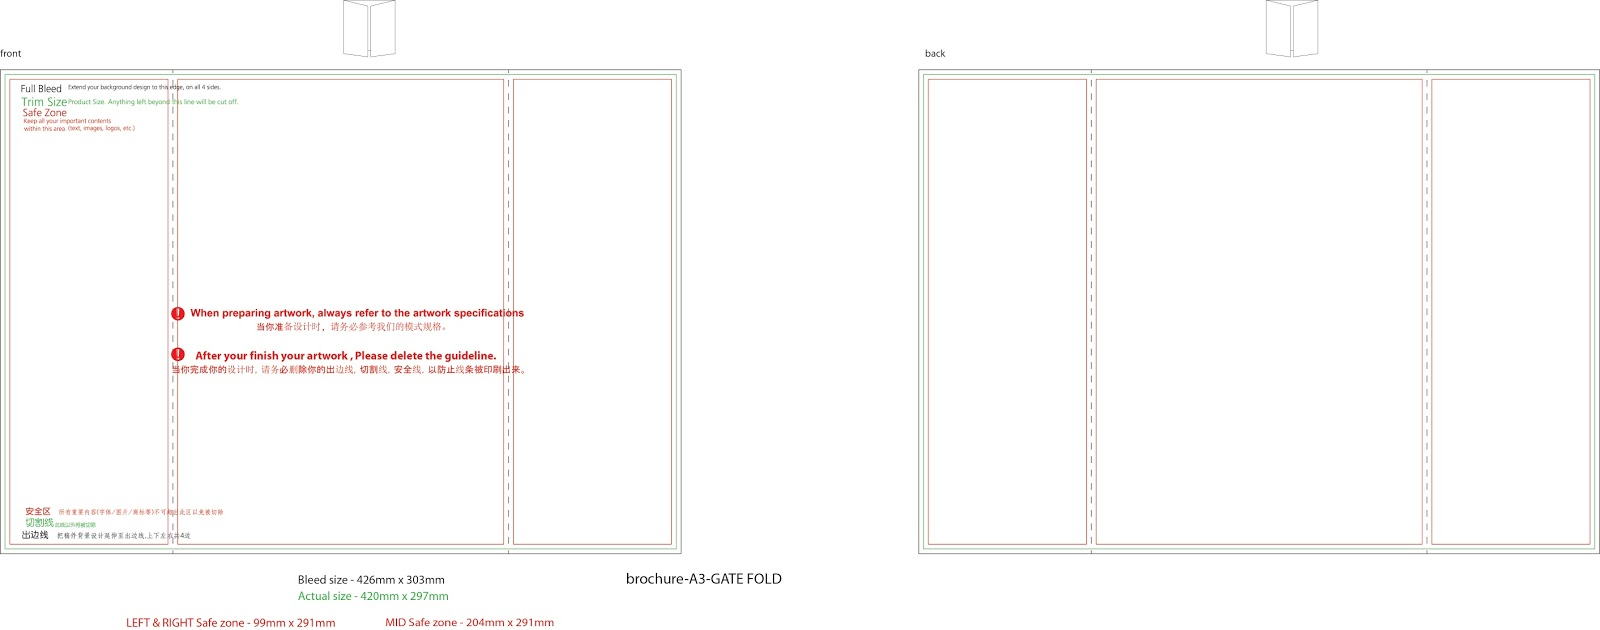 Double Gate Fold Brochure Template Free Download DTemplates - 5 fold brochure template